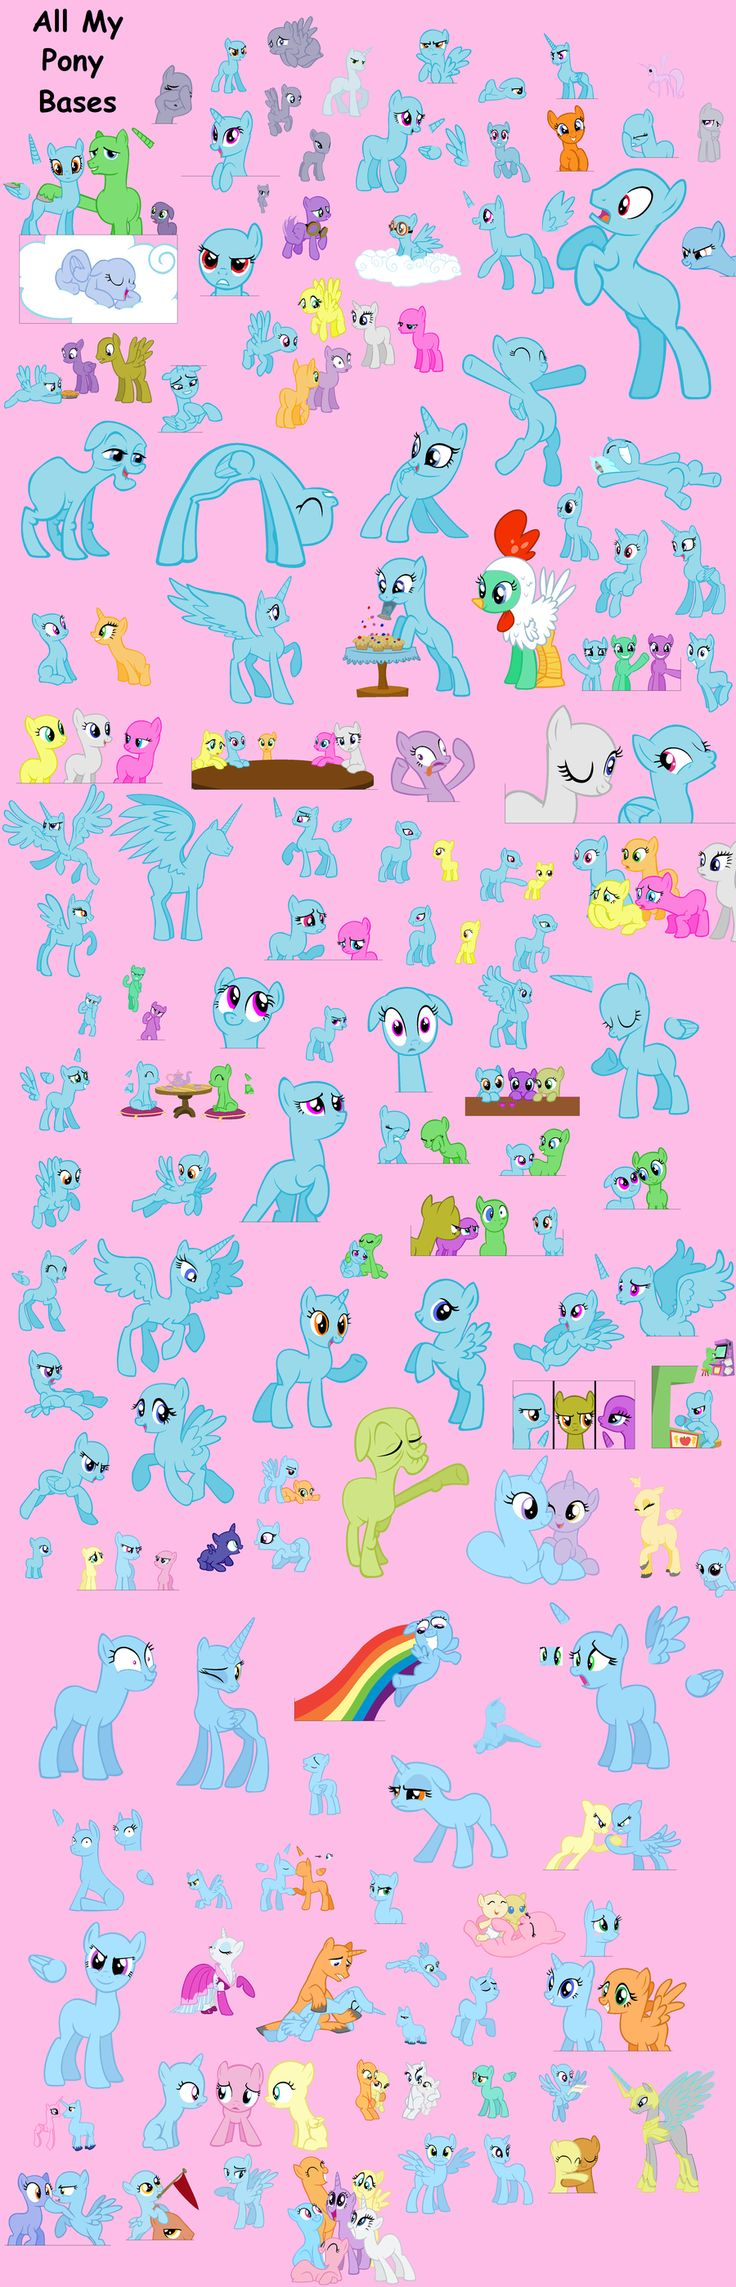 ALL MY PONY BASES by ~Rain-Approves on deviantART